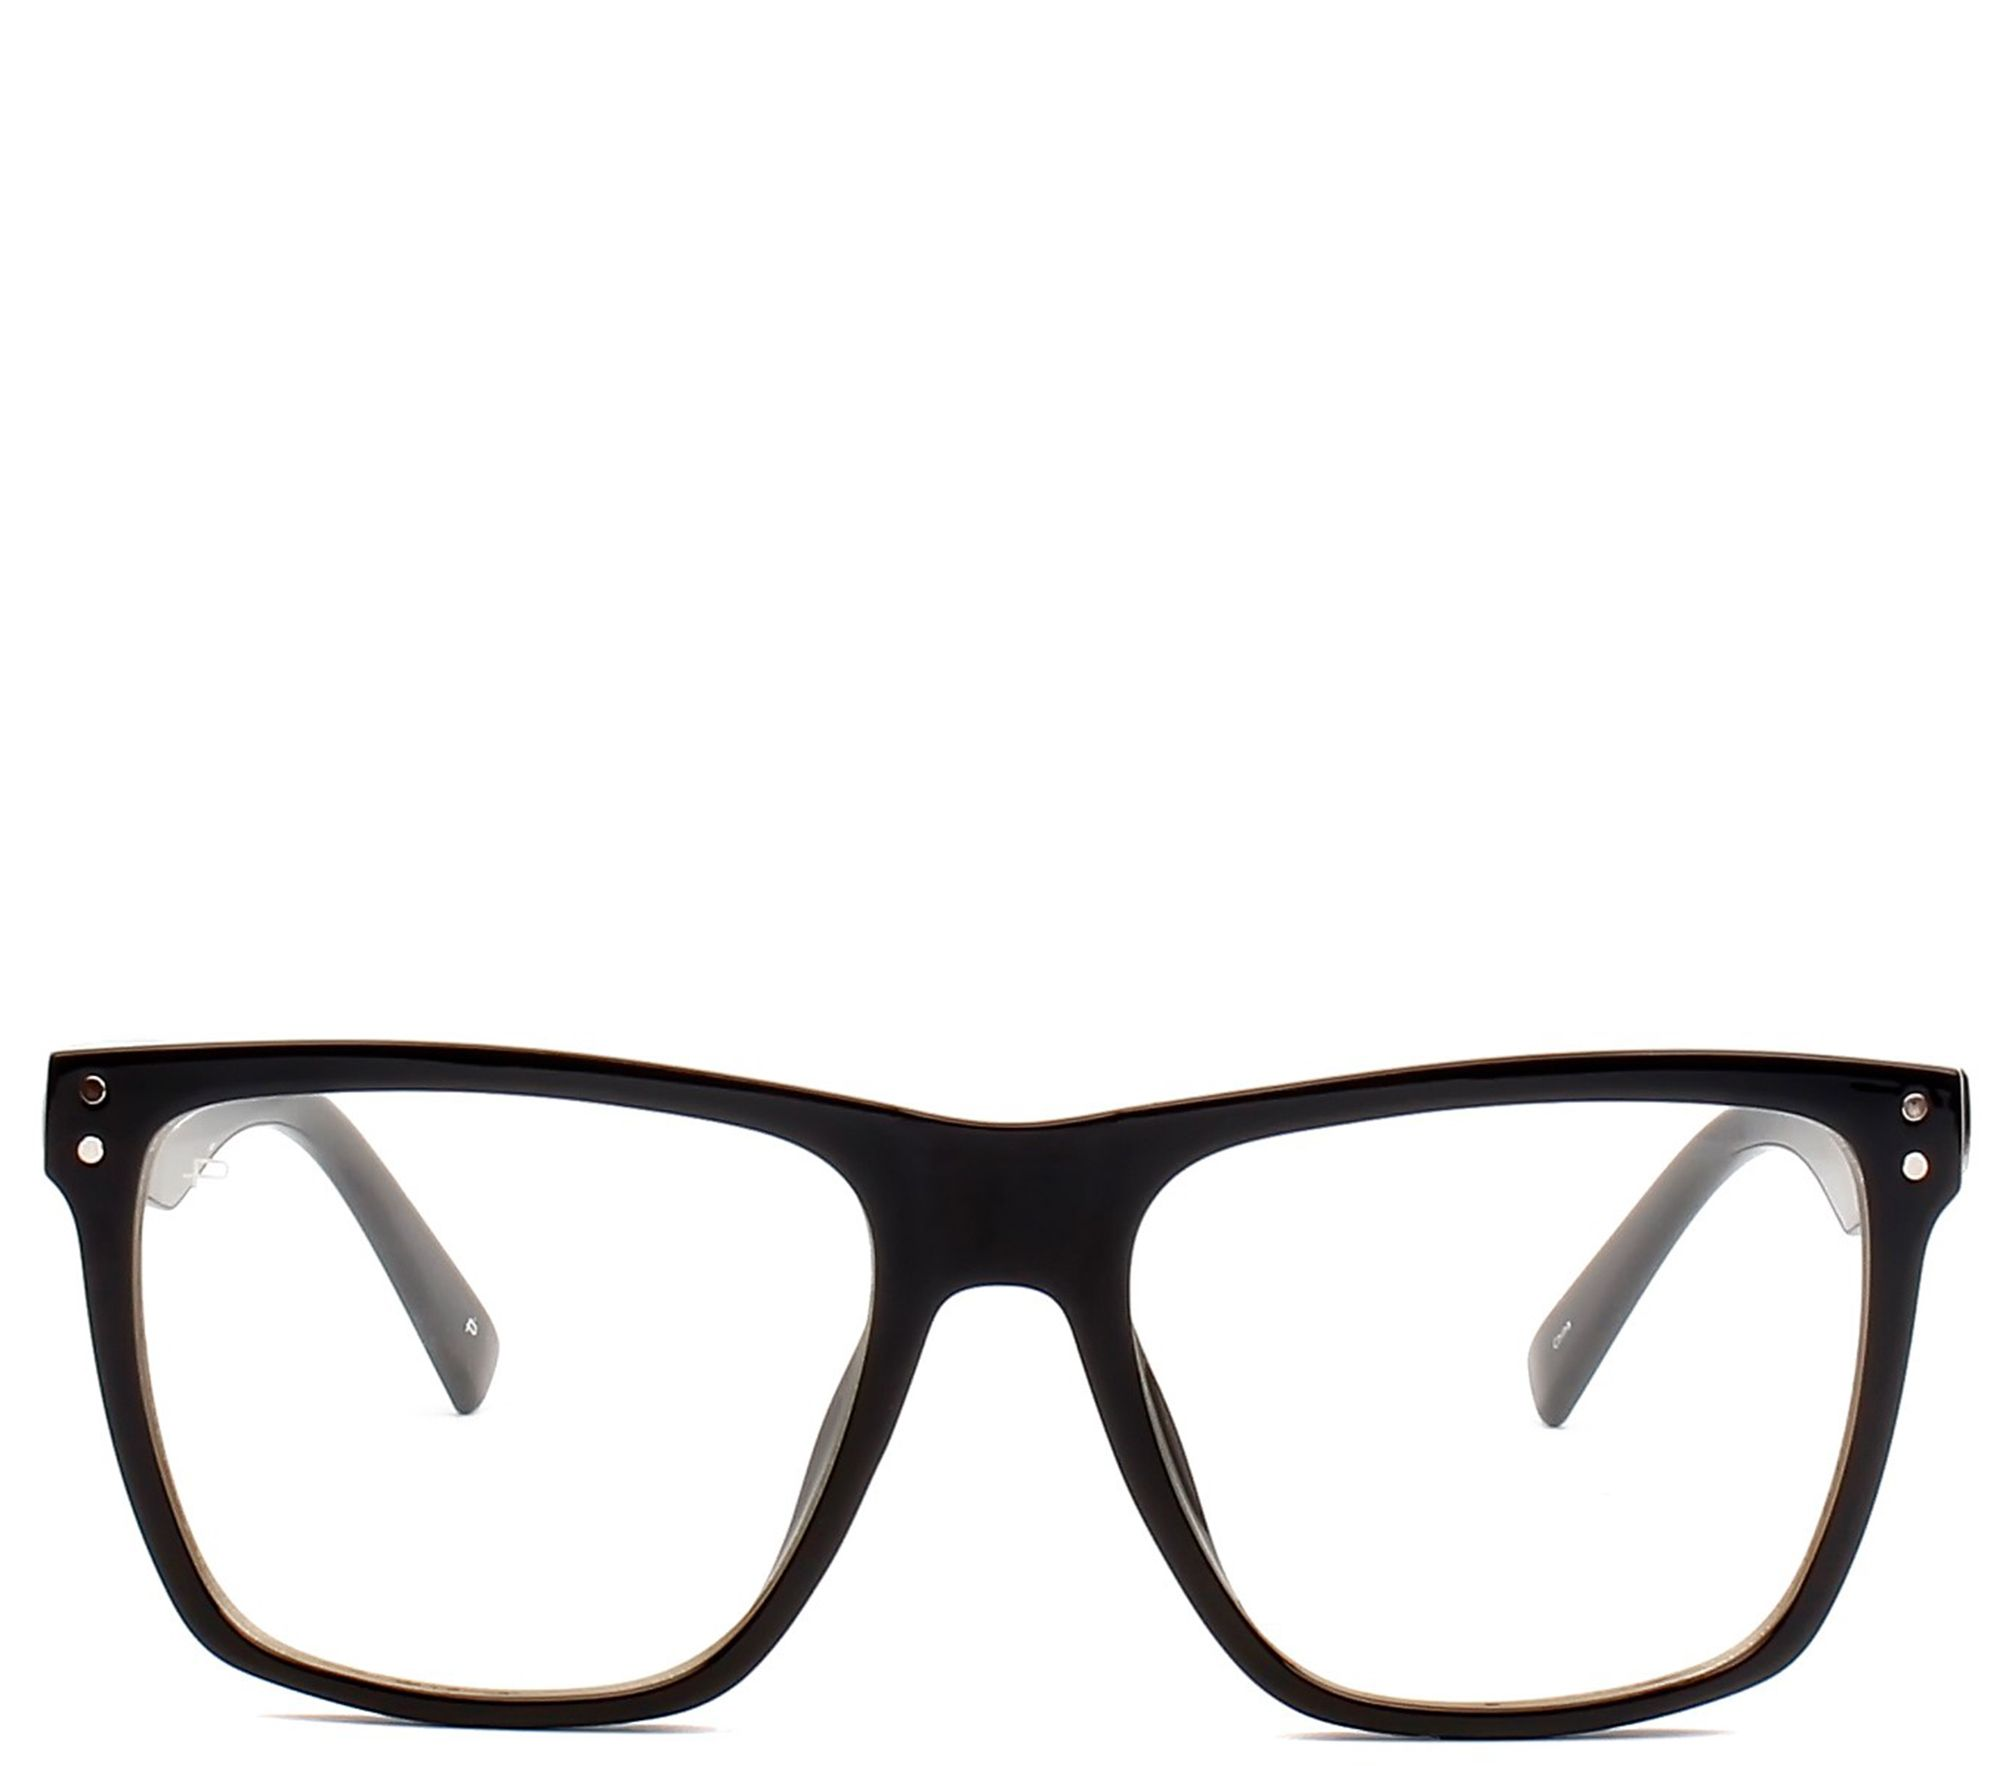 cf252d19740e2 Prive Revaux MLK Blue Light Blocking Glasses - Page 1 — QVC.com